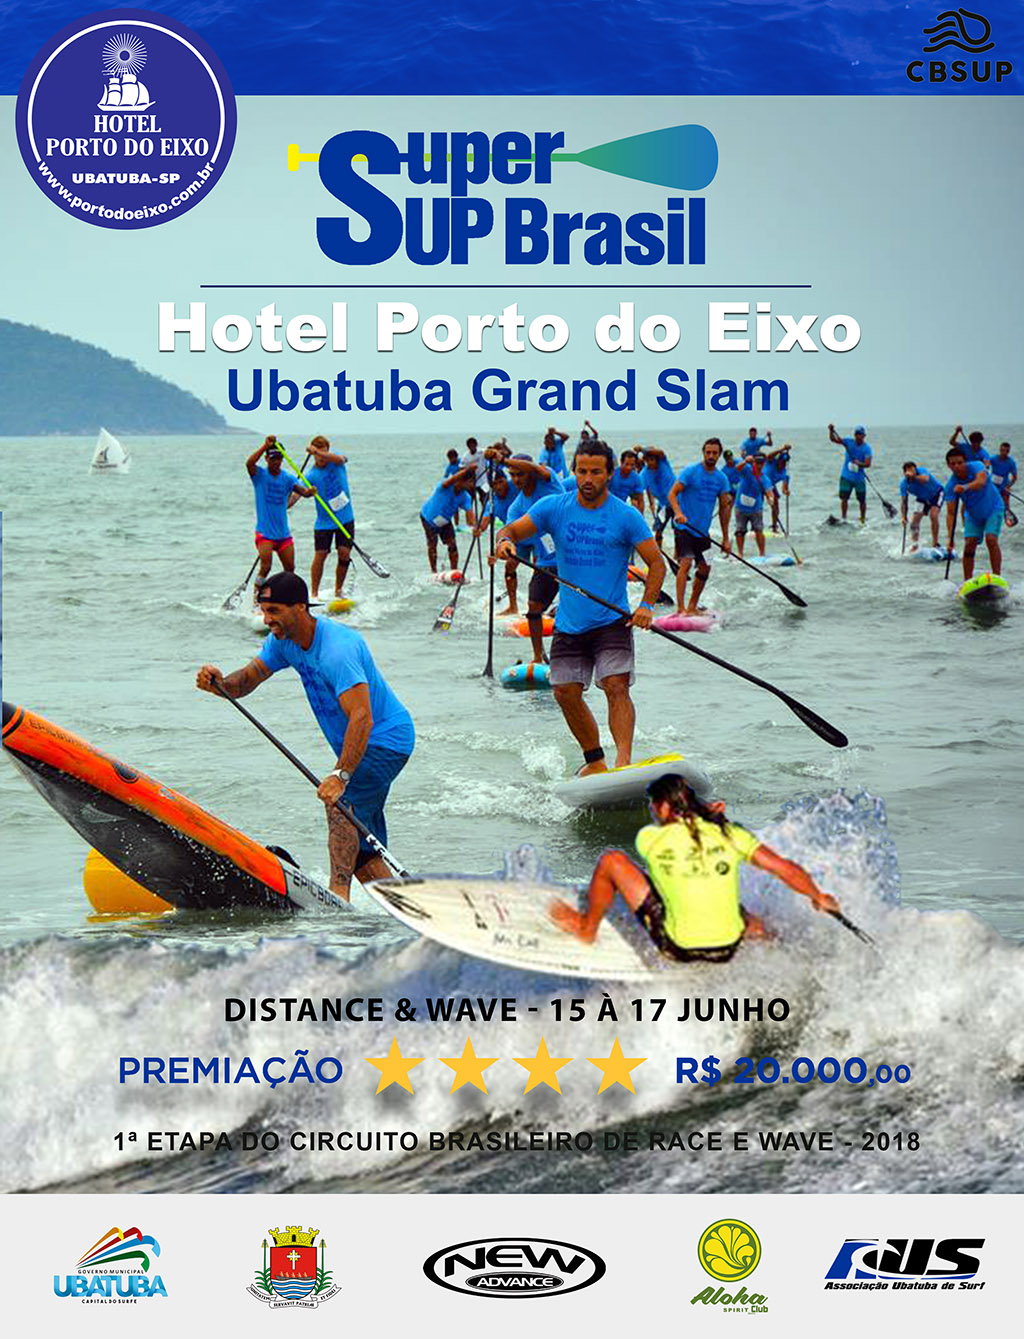 flyer 2 HPE ubatuba grand slam.2018 baixa